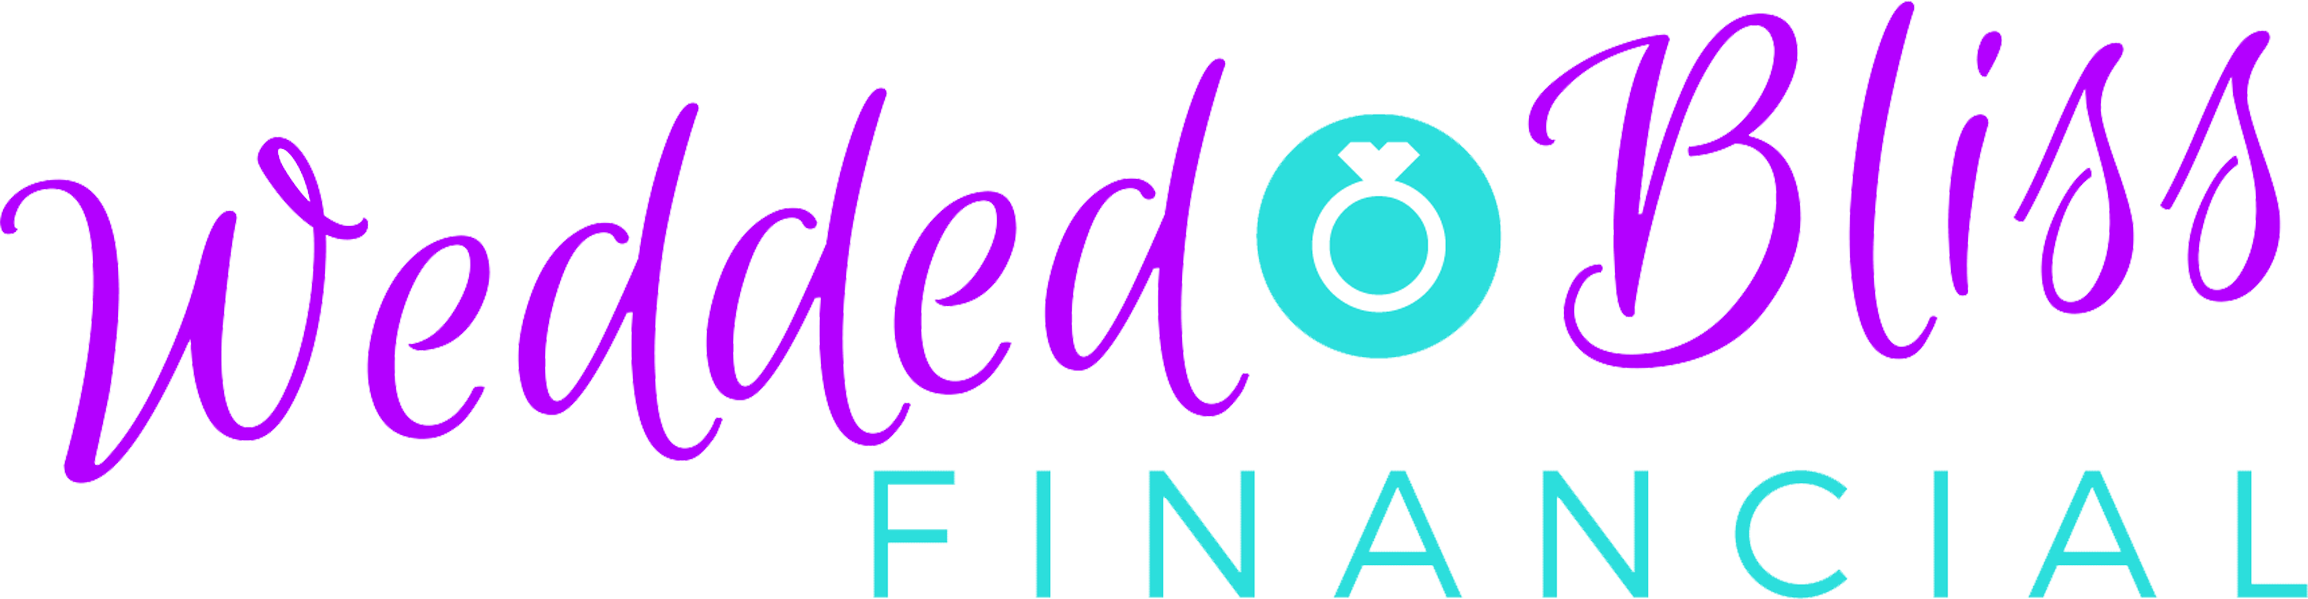 Wedded Bliss Logo_Final_highres.png